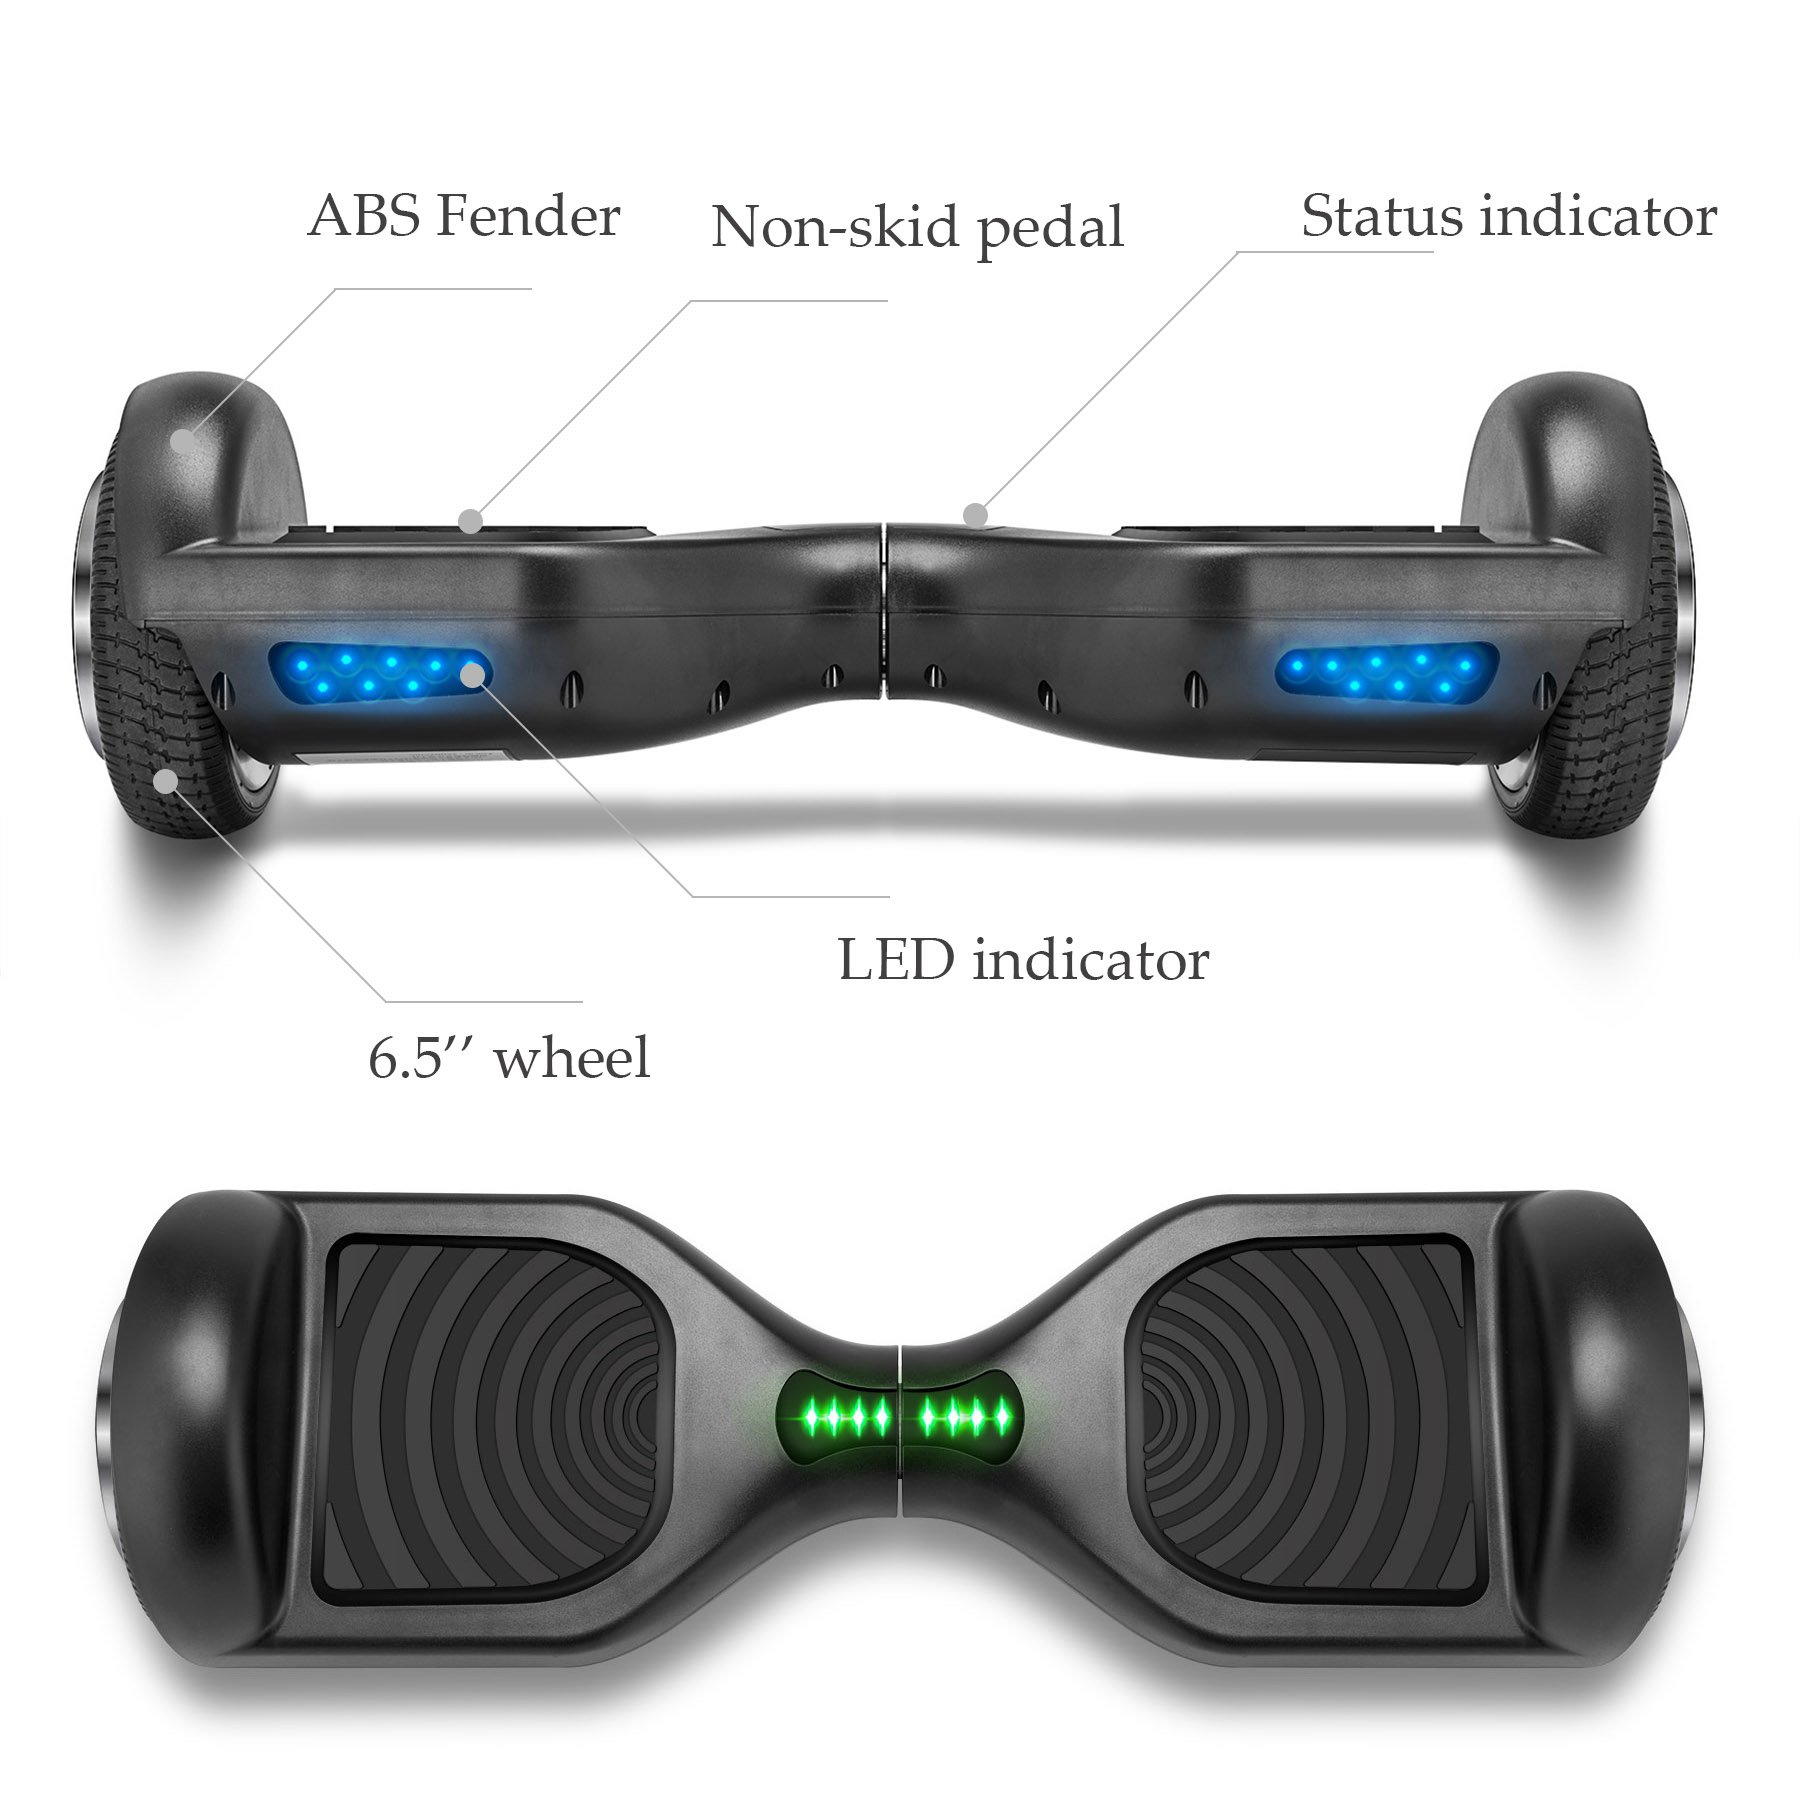 VEEKO Self Balancing Scooter Black Hoverboard with LED Indicator Lights, 350W Dual Motor, UL 2272/2271 Certificate, Alloy Durable Wheels by VEEKO (Image #3)